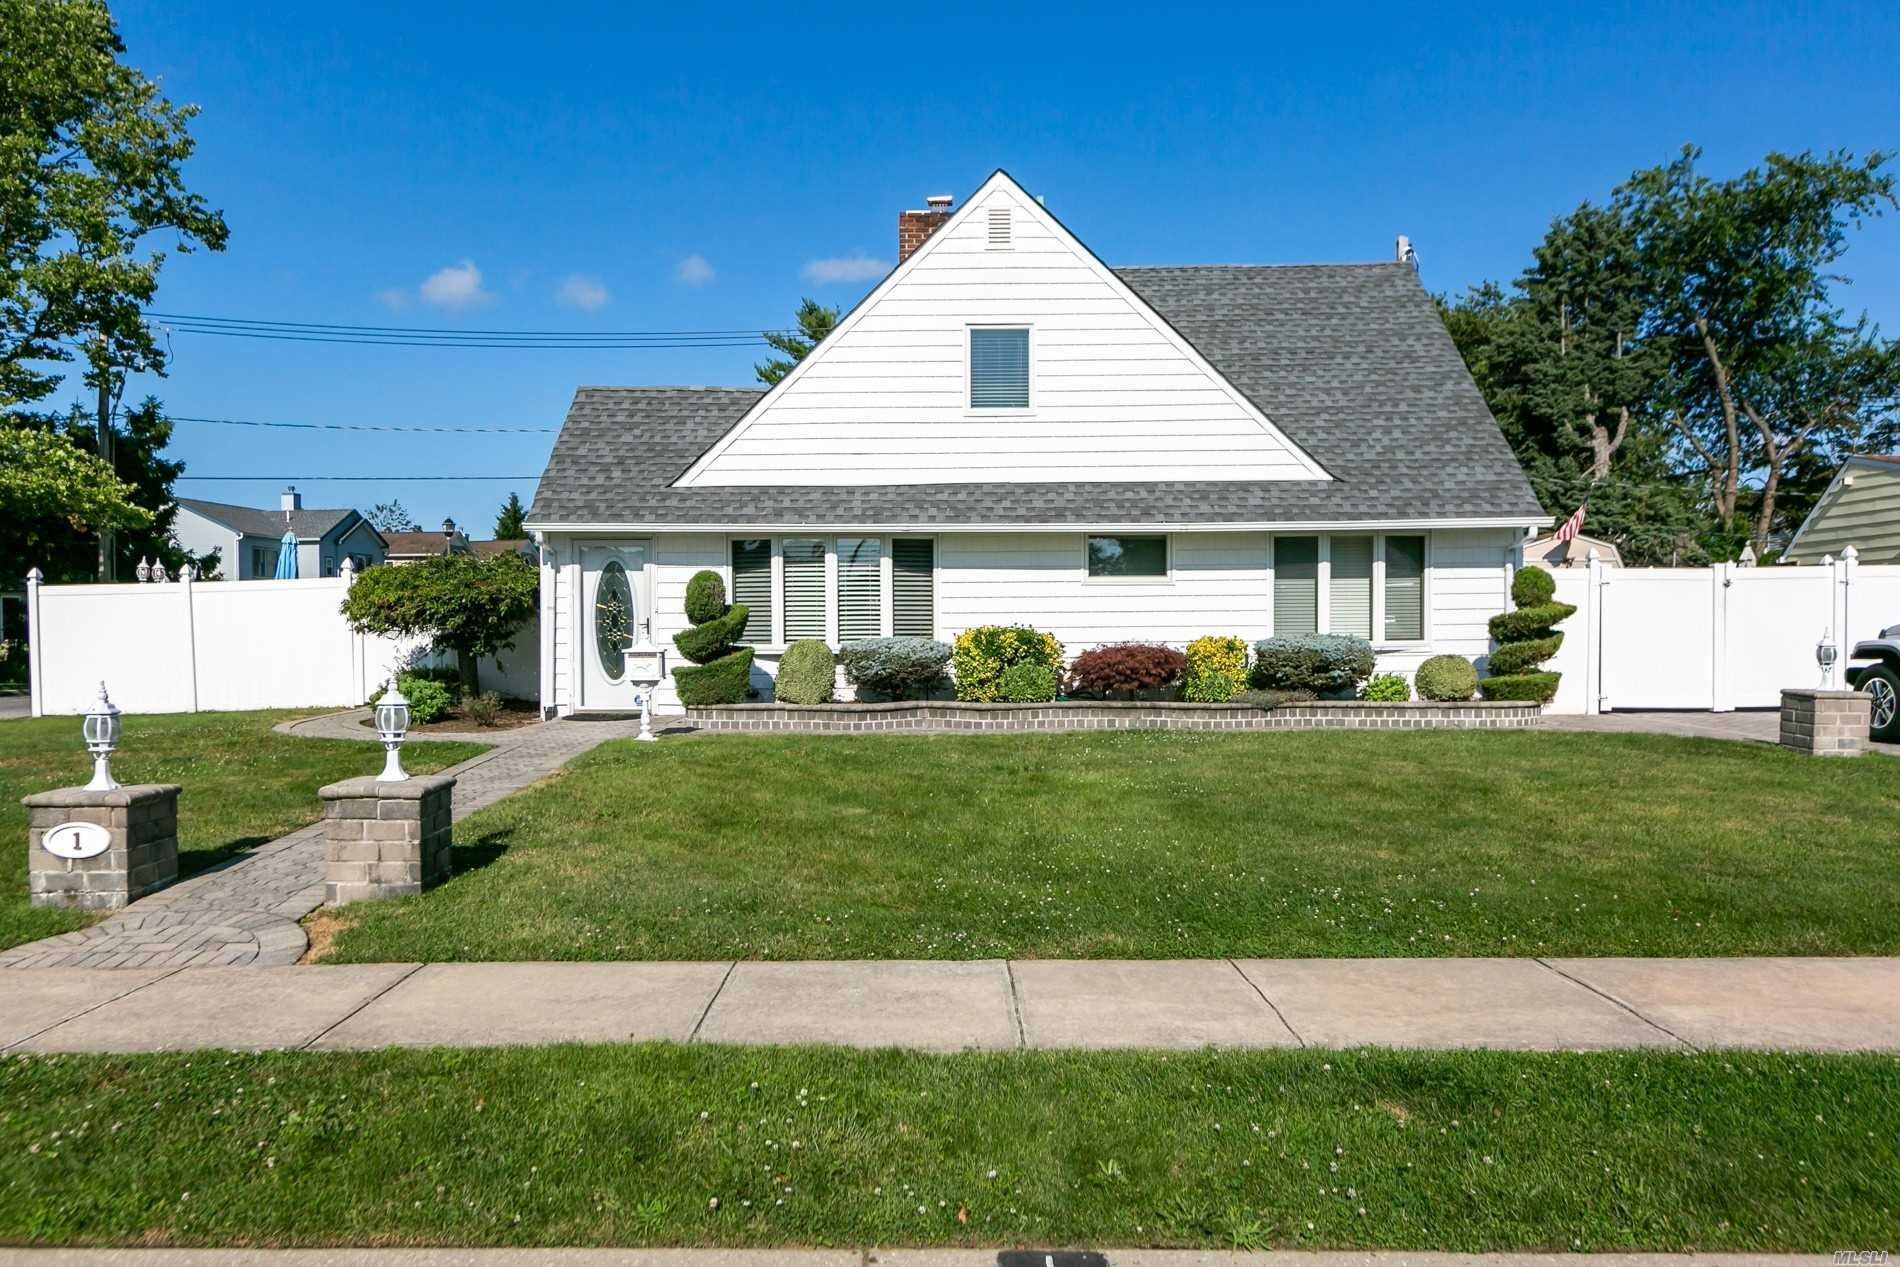 1 Forester Ln, Levittown, NY 11756 - MLS#: 3232218